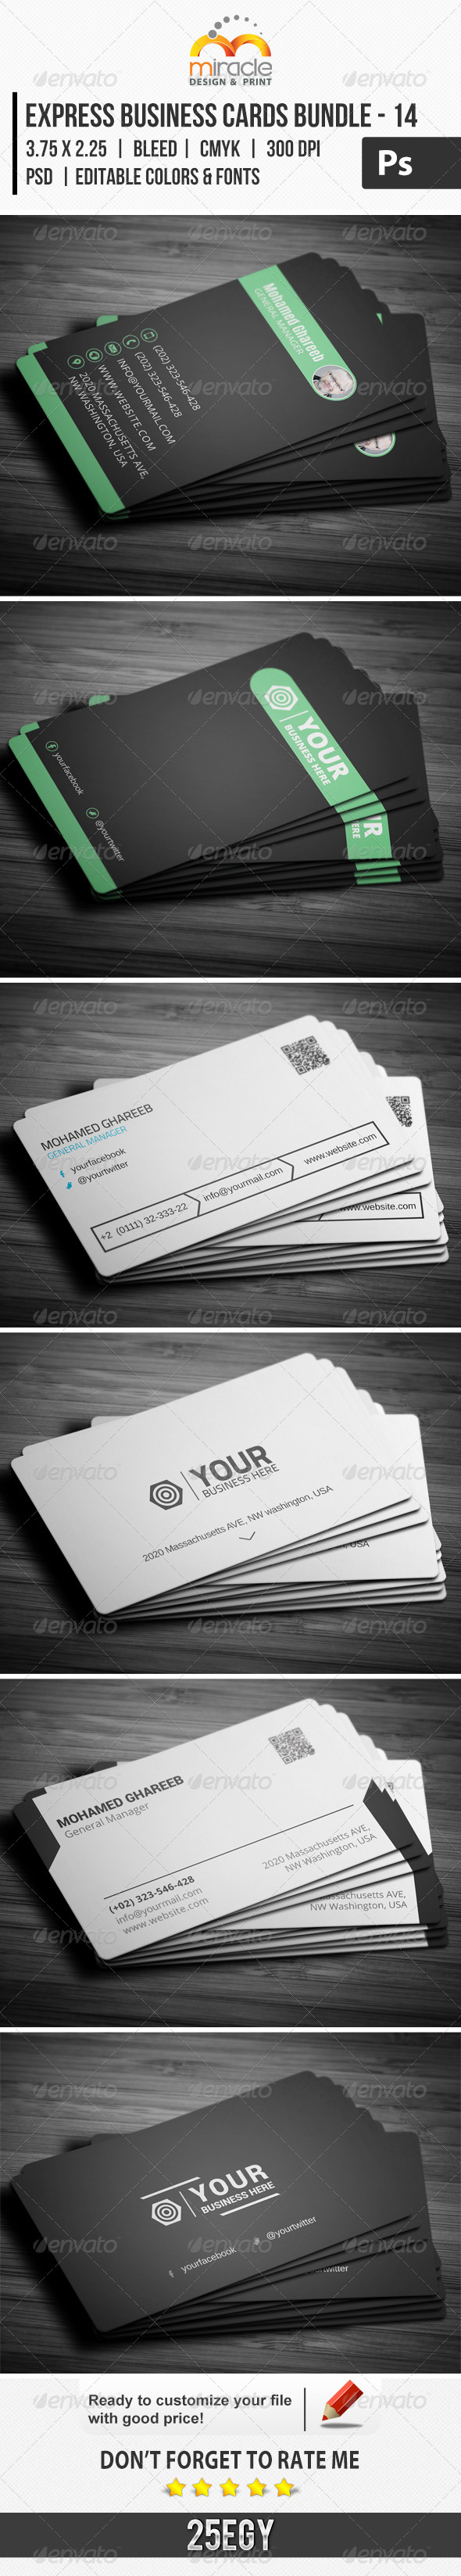 GraphicRiver Express Business Cards Bundle 14 7166133